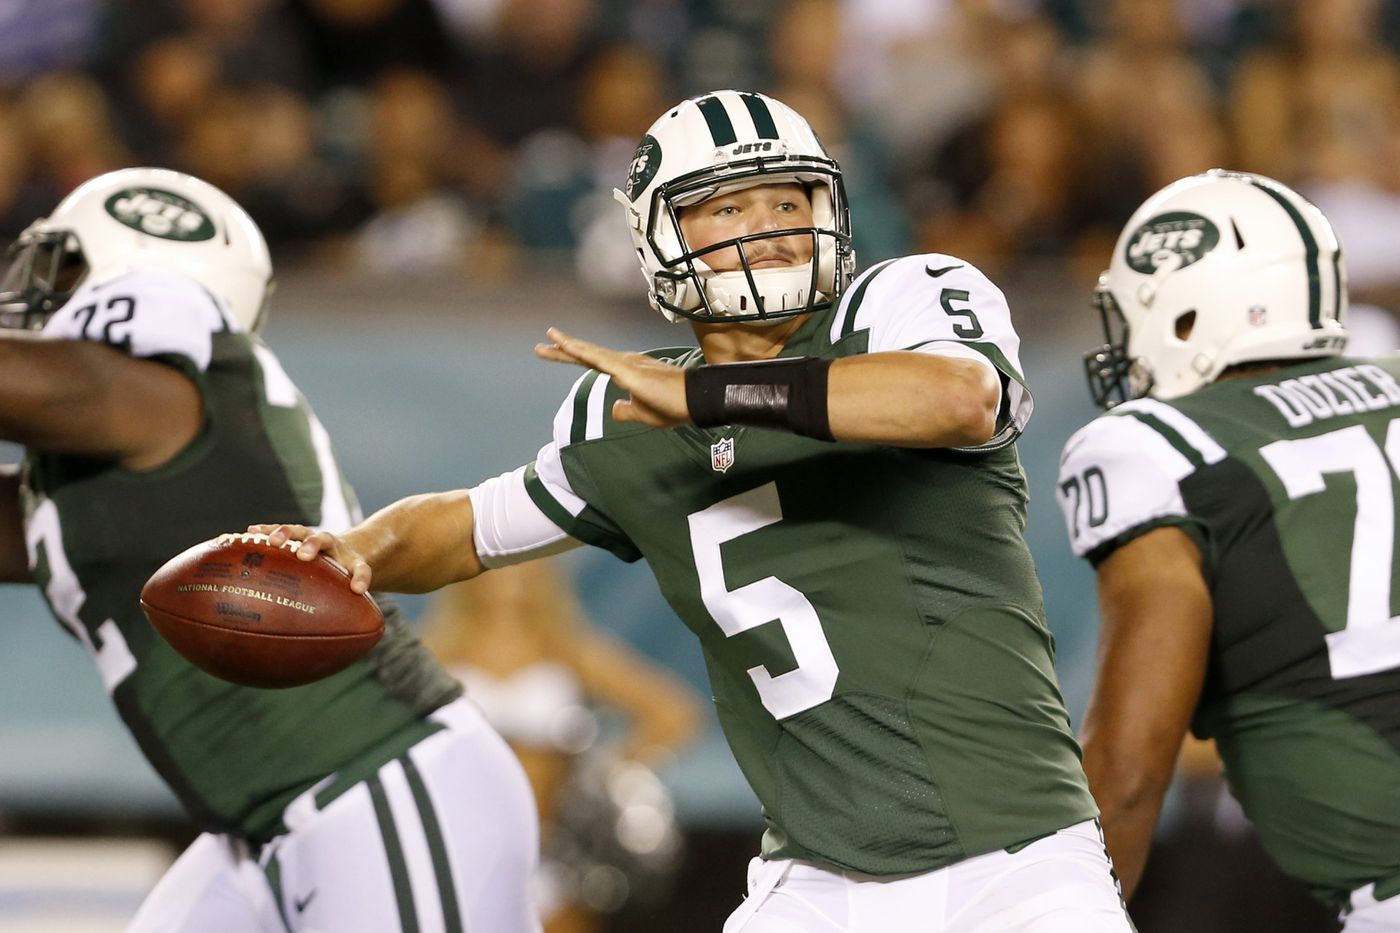 Christian Hackenberg, former Penn State quarterback, signs with Eagles